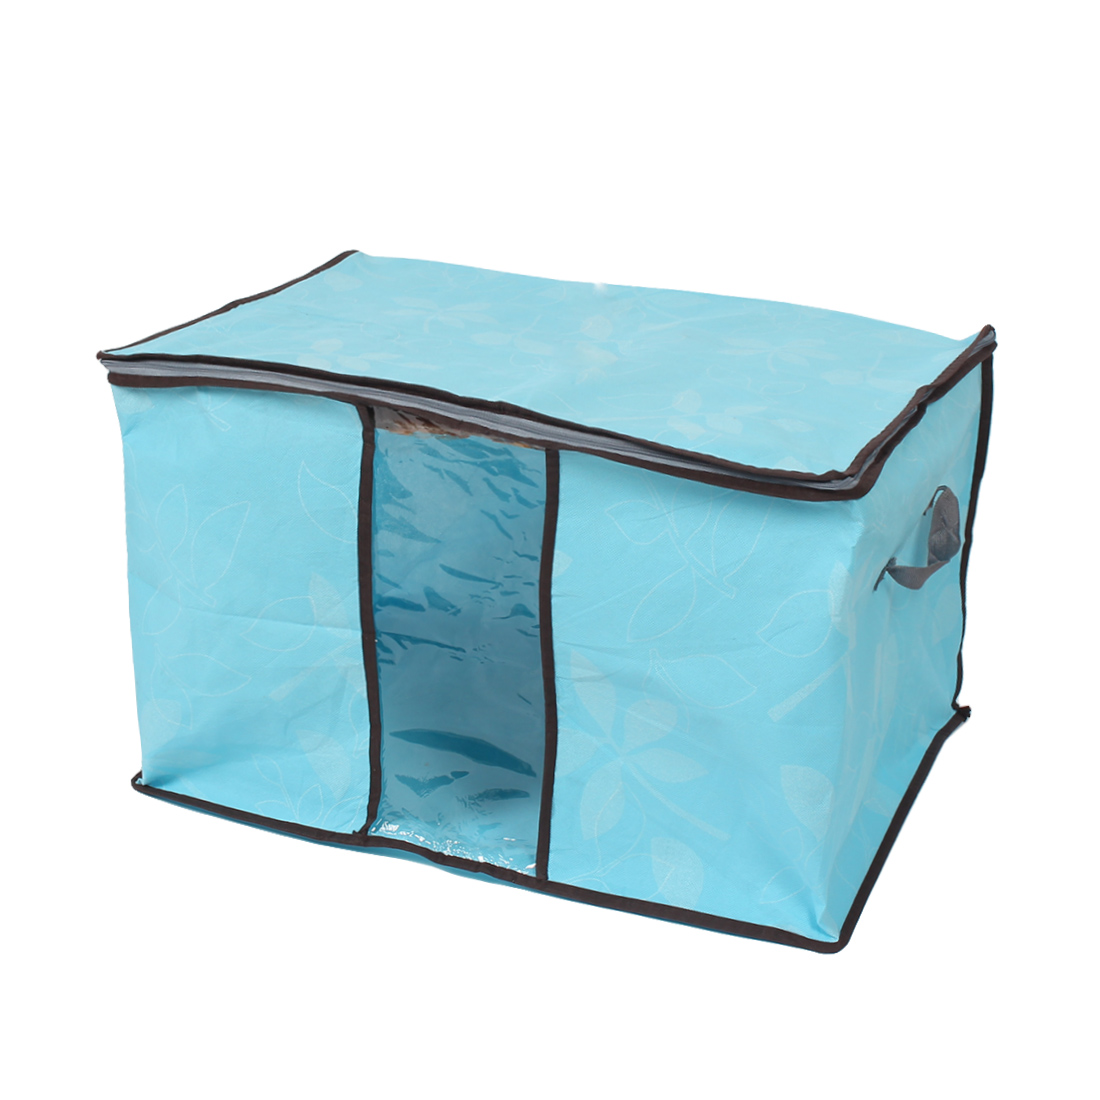 Blanket Pillows Quilts Clothes Beddings Storage Bag Organizer Blue 60x35x42cm by Unique Bargains